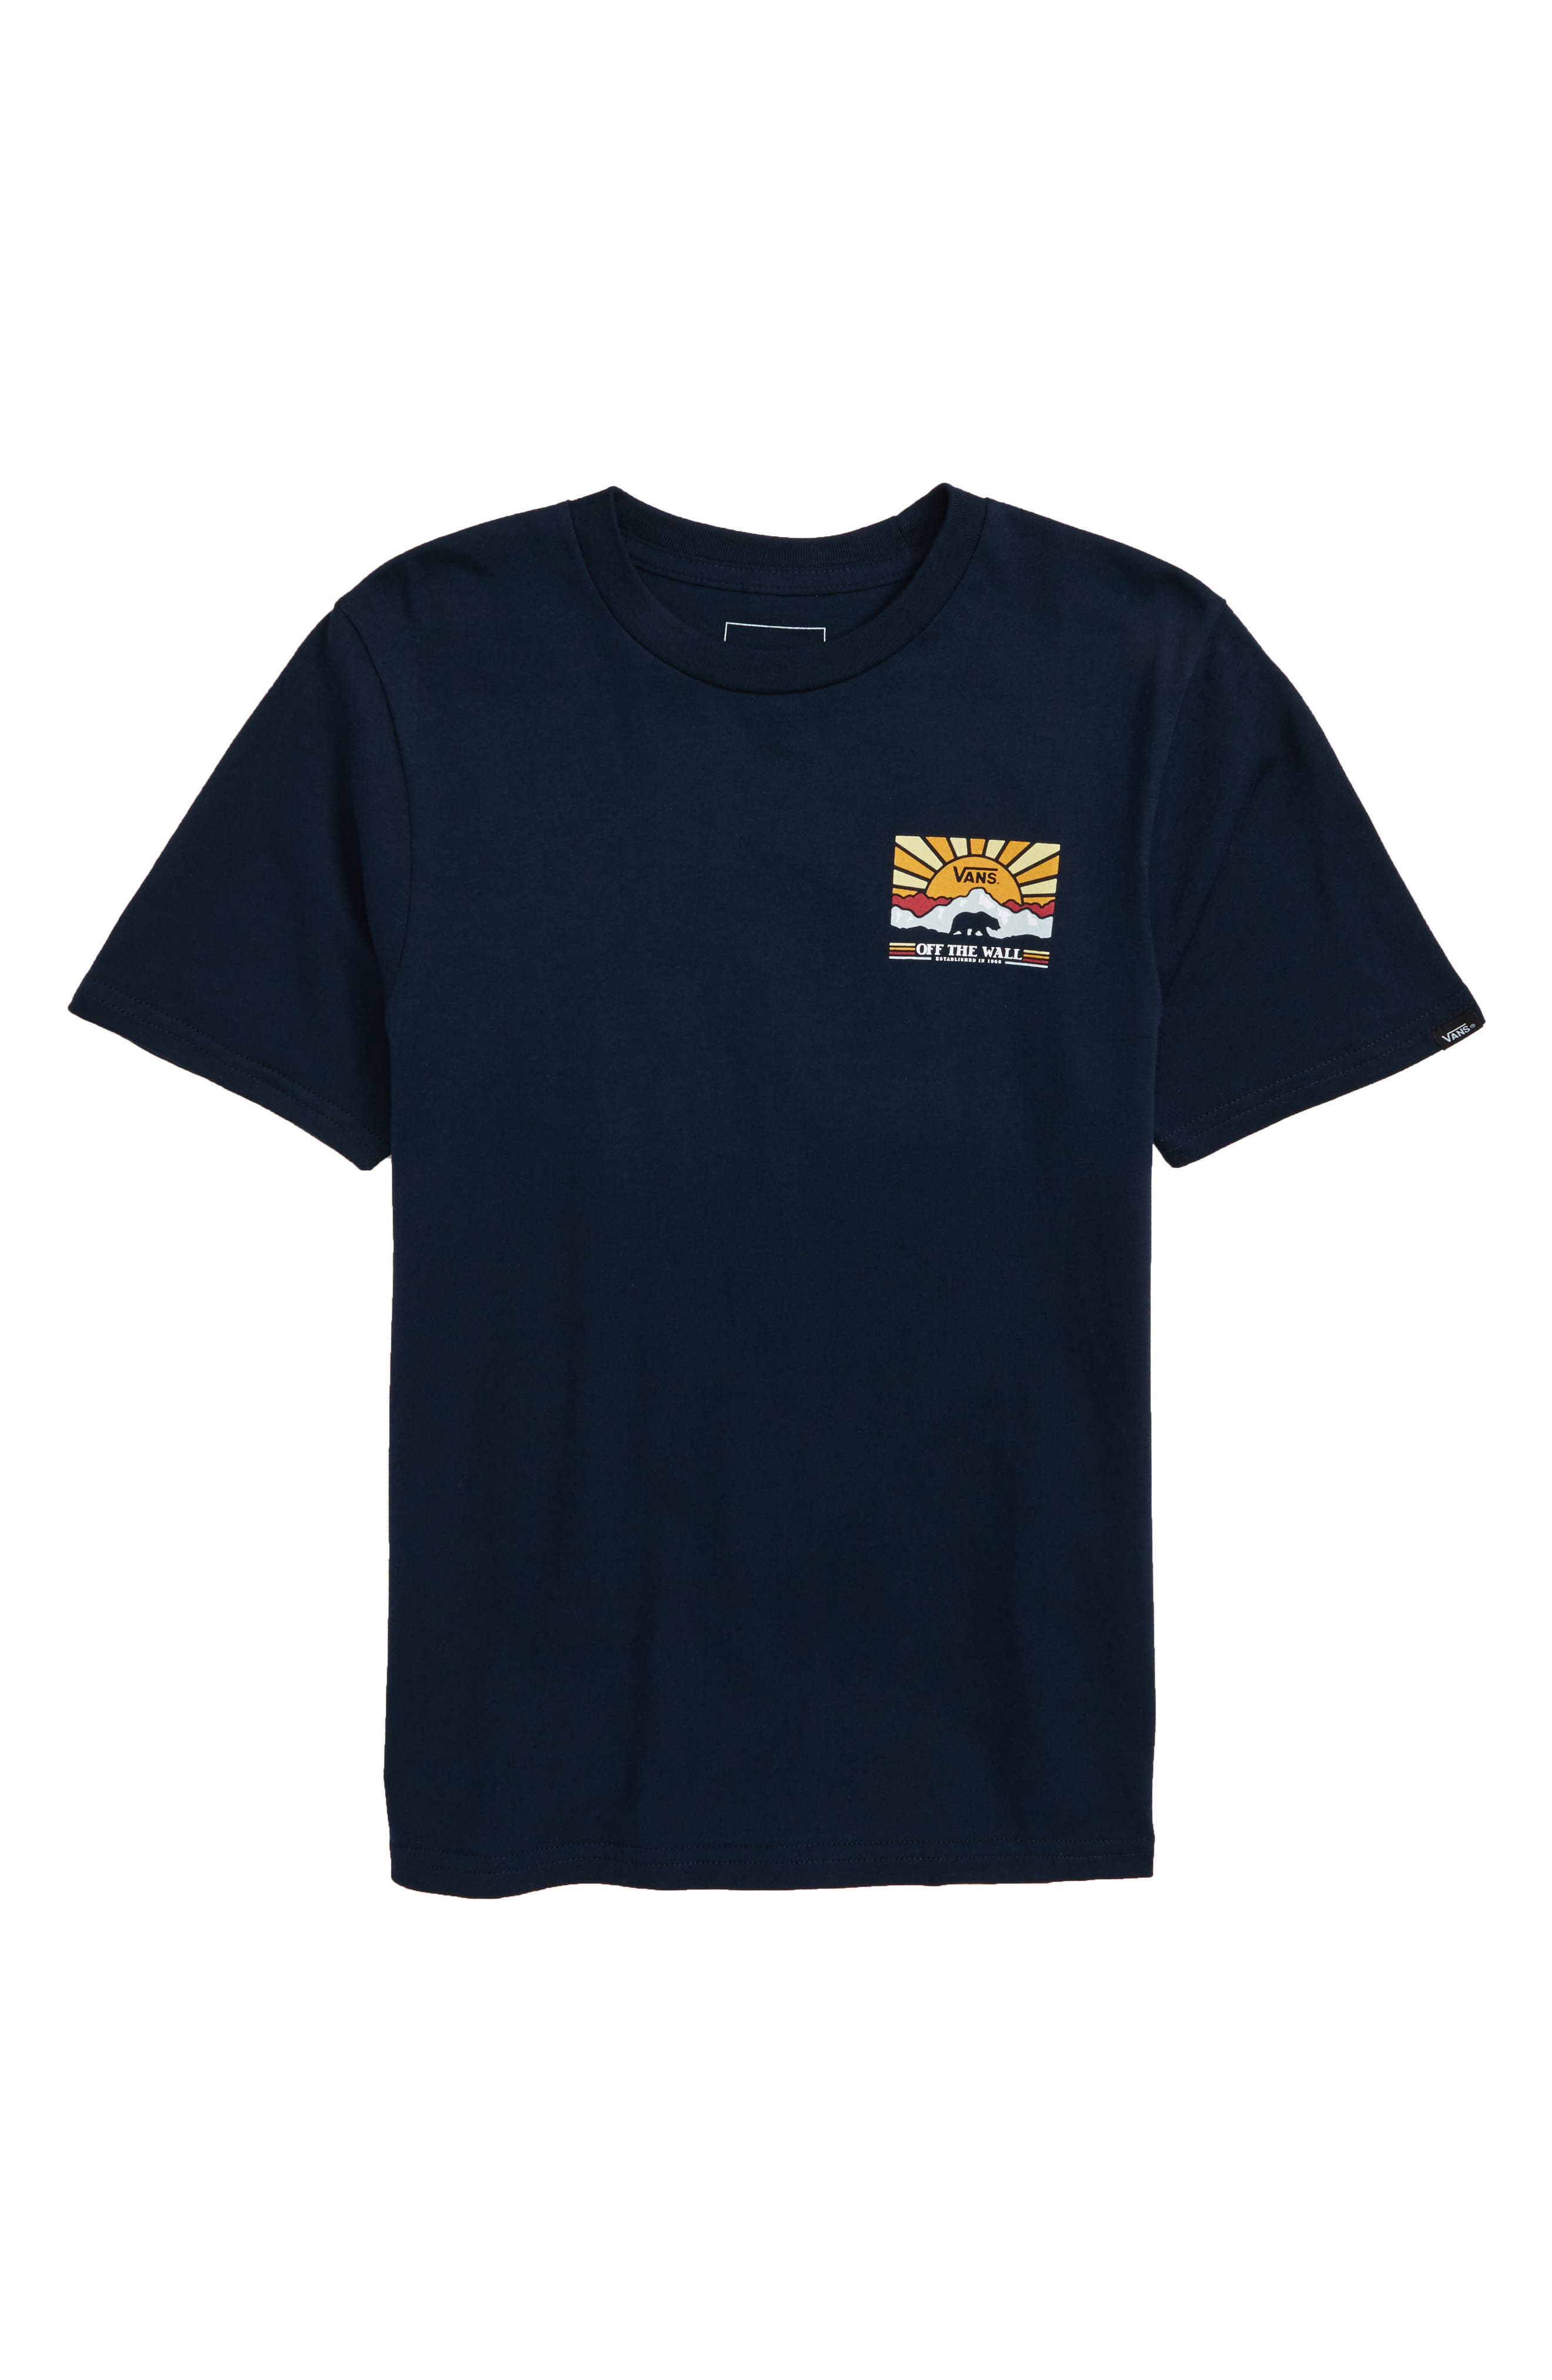 Grizzly Mountain Graphic T-Shirt,                             Main thumbnail 1, color,                             410